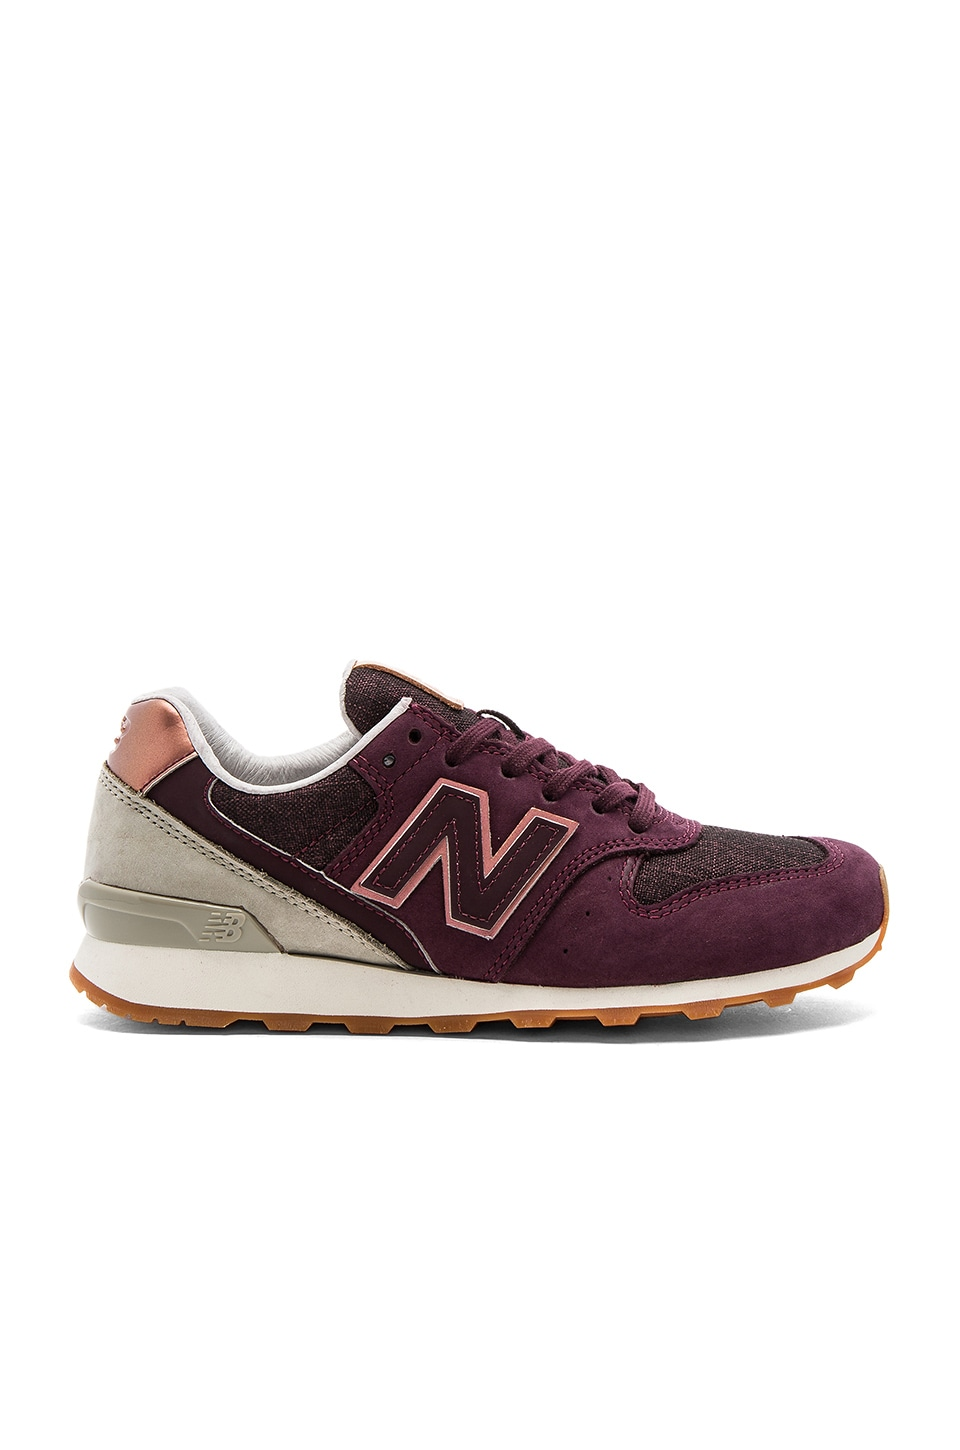 New Balance Grey Sneaker in Supernova Red & Husk